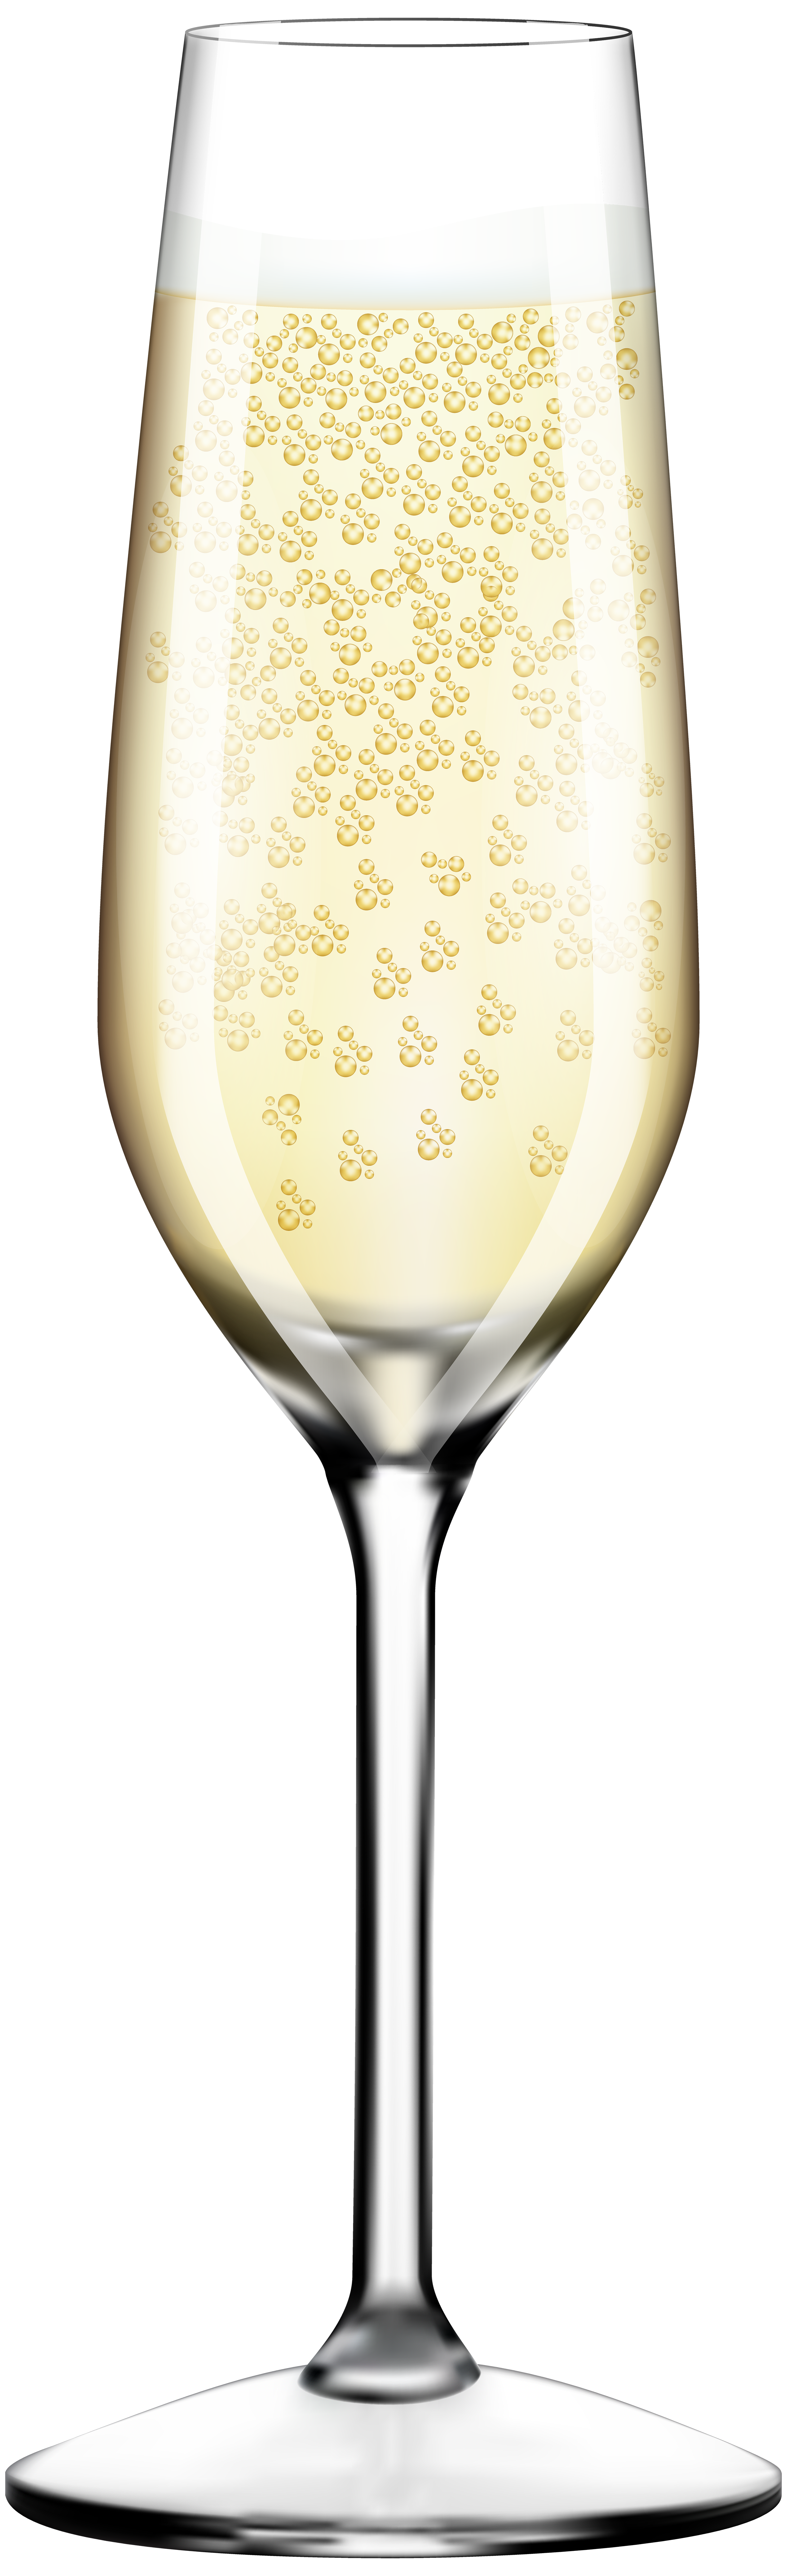 Champaign clipart transparent background. Champagne glass png clip